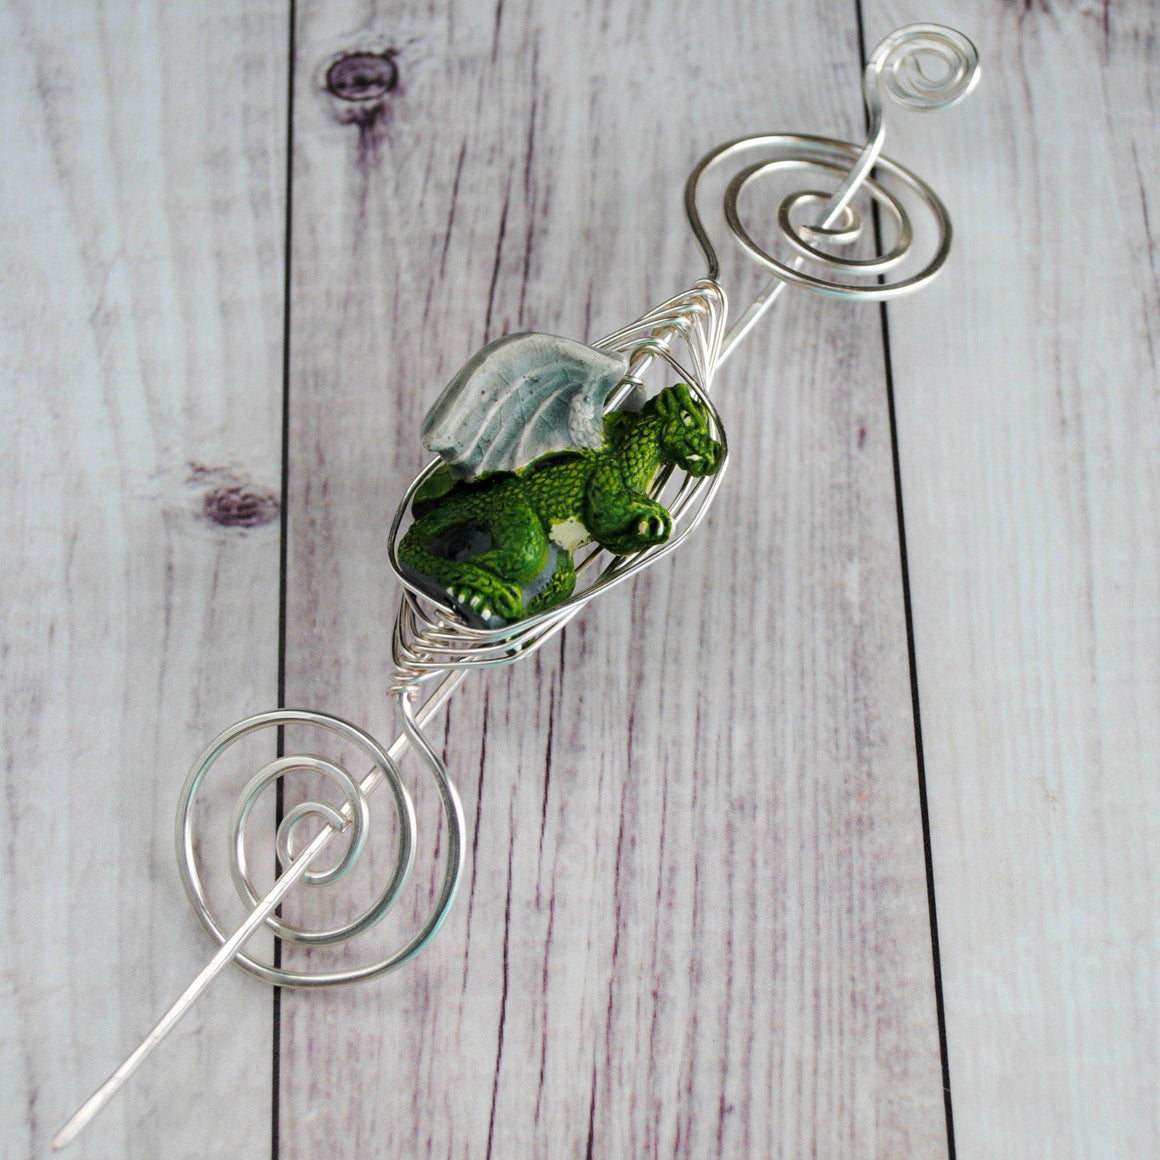 Shawl Pin, Green Dragon Shawl Pin - Large Silver - Limited Edition - Crafty Flutterby Creations